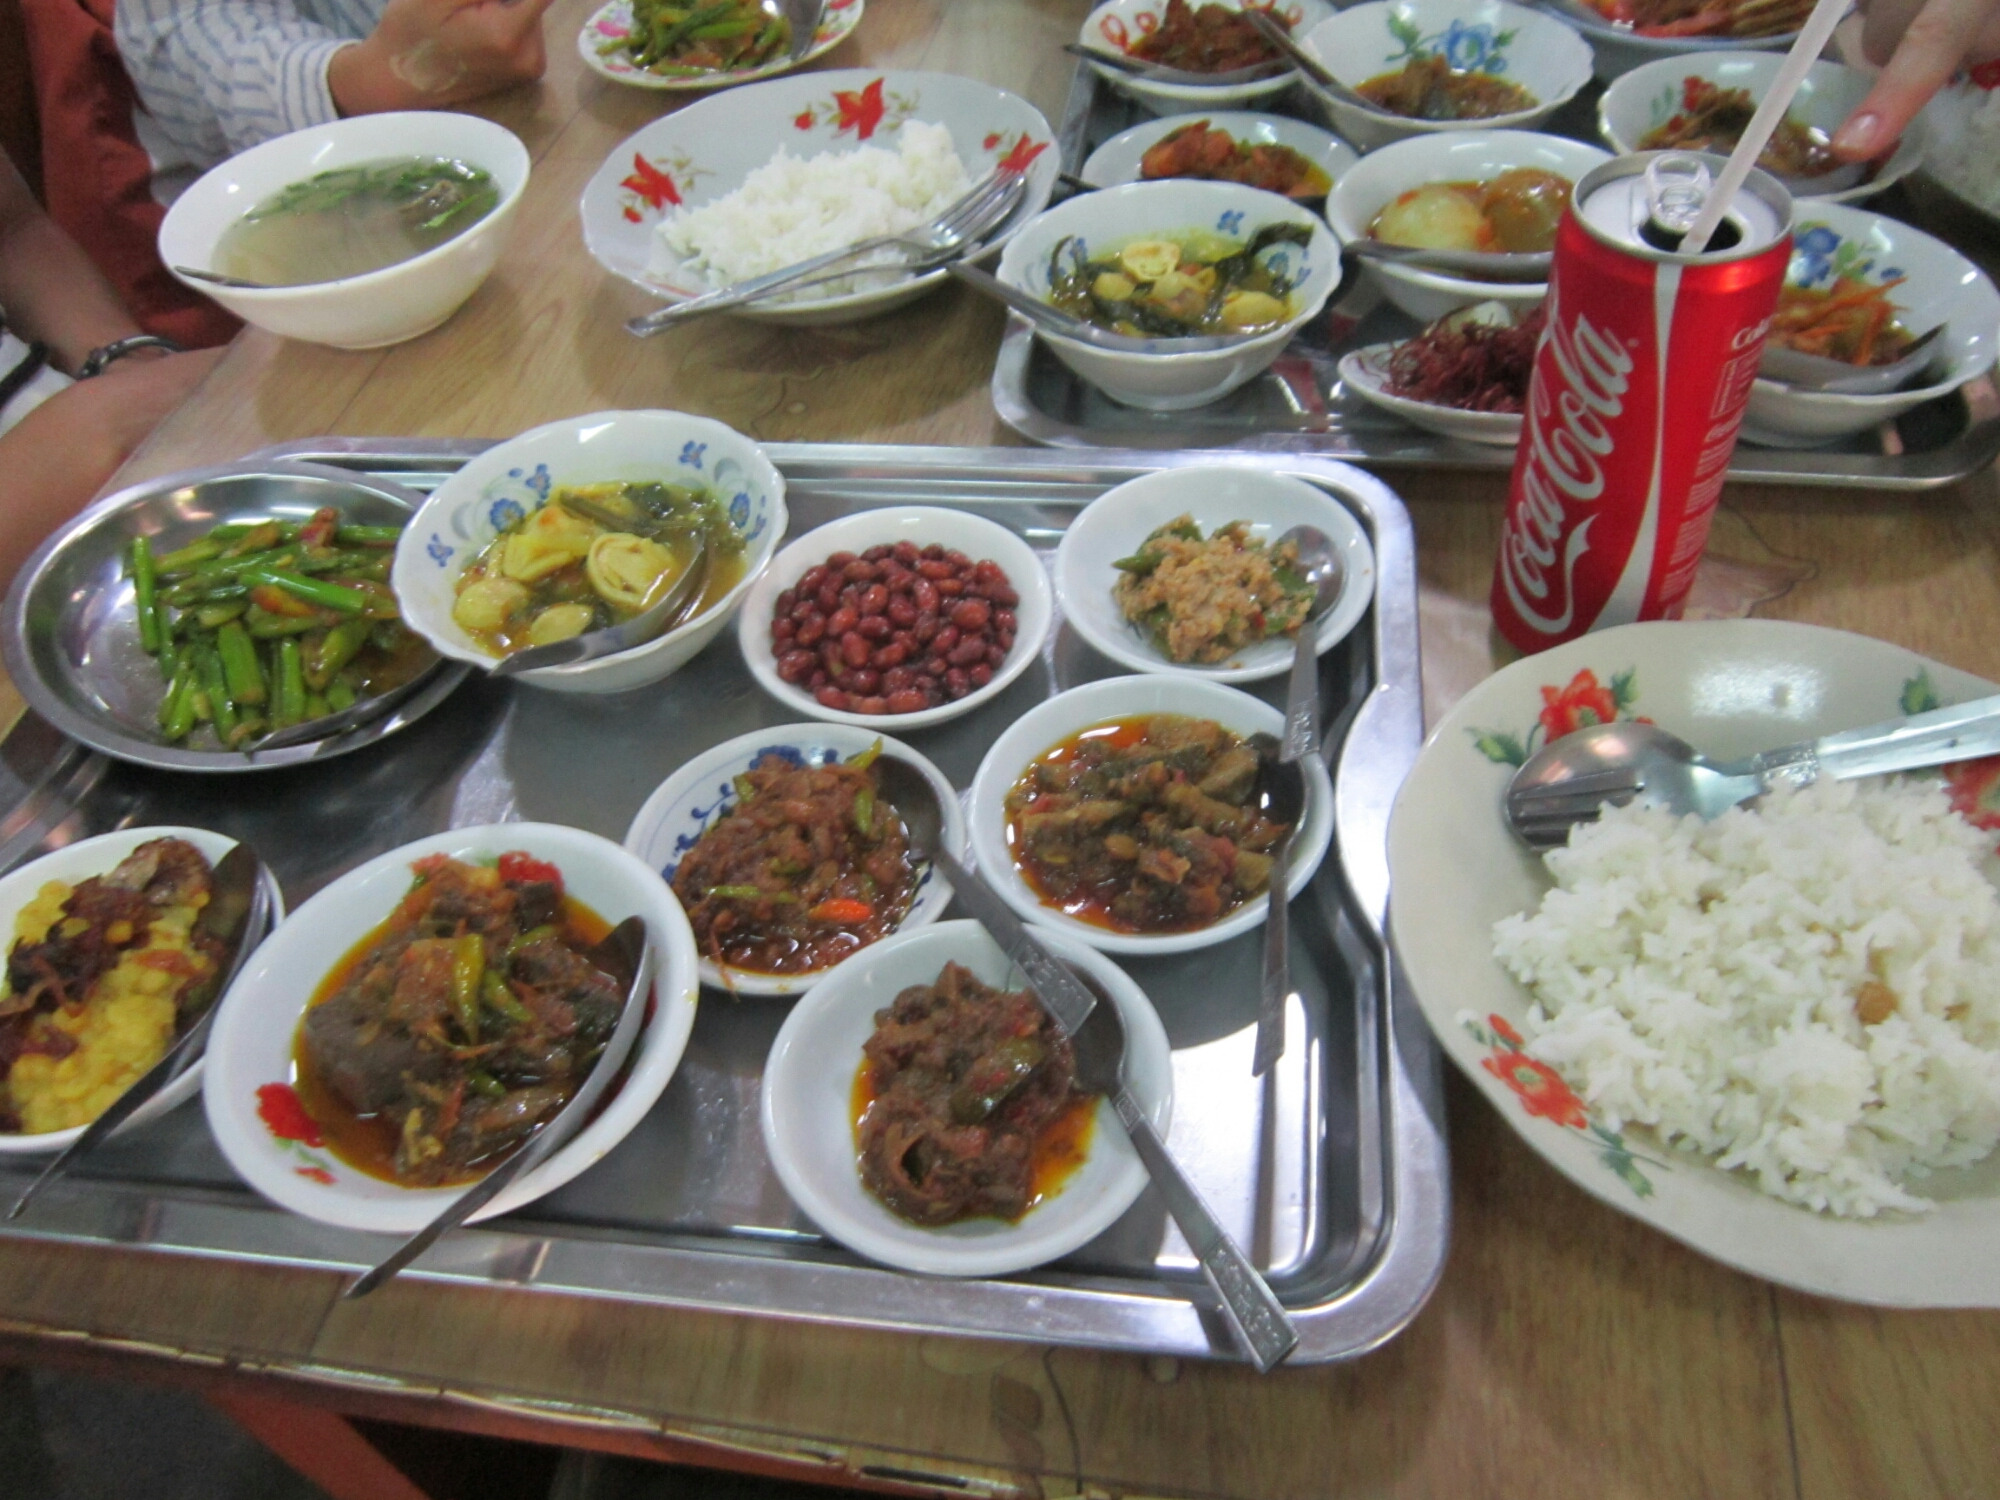 Food in a restaurant in Bagan